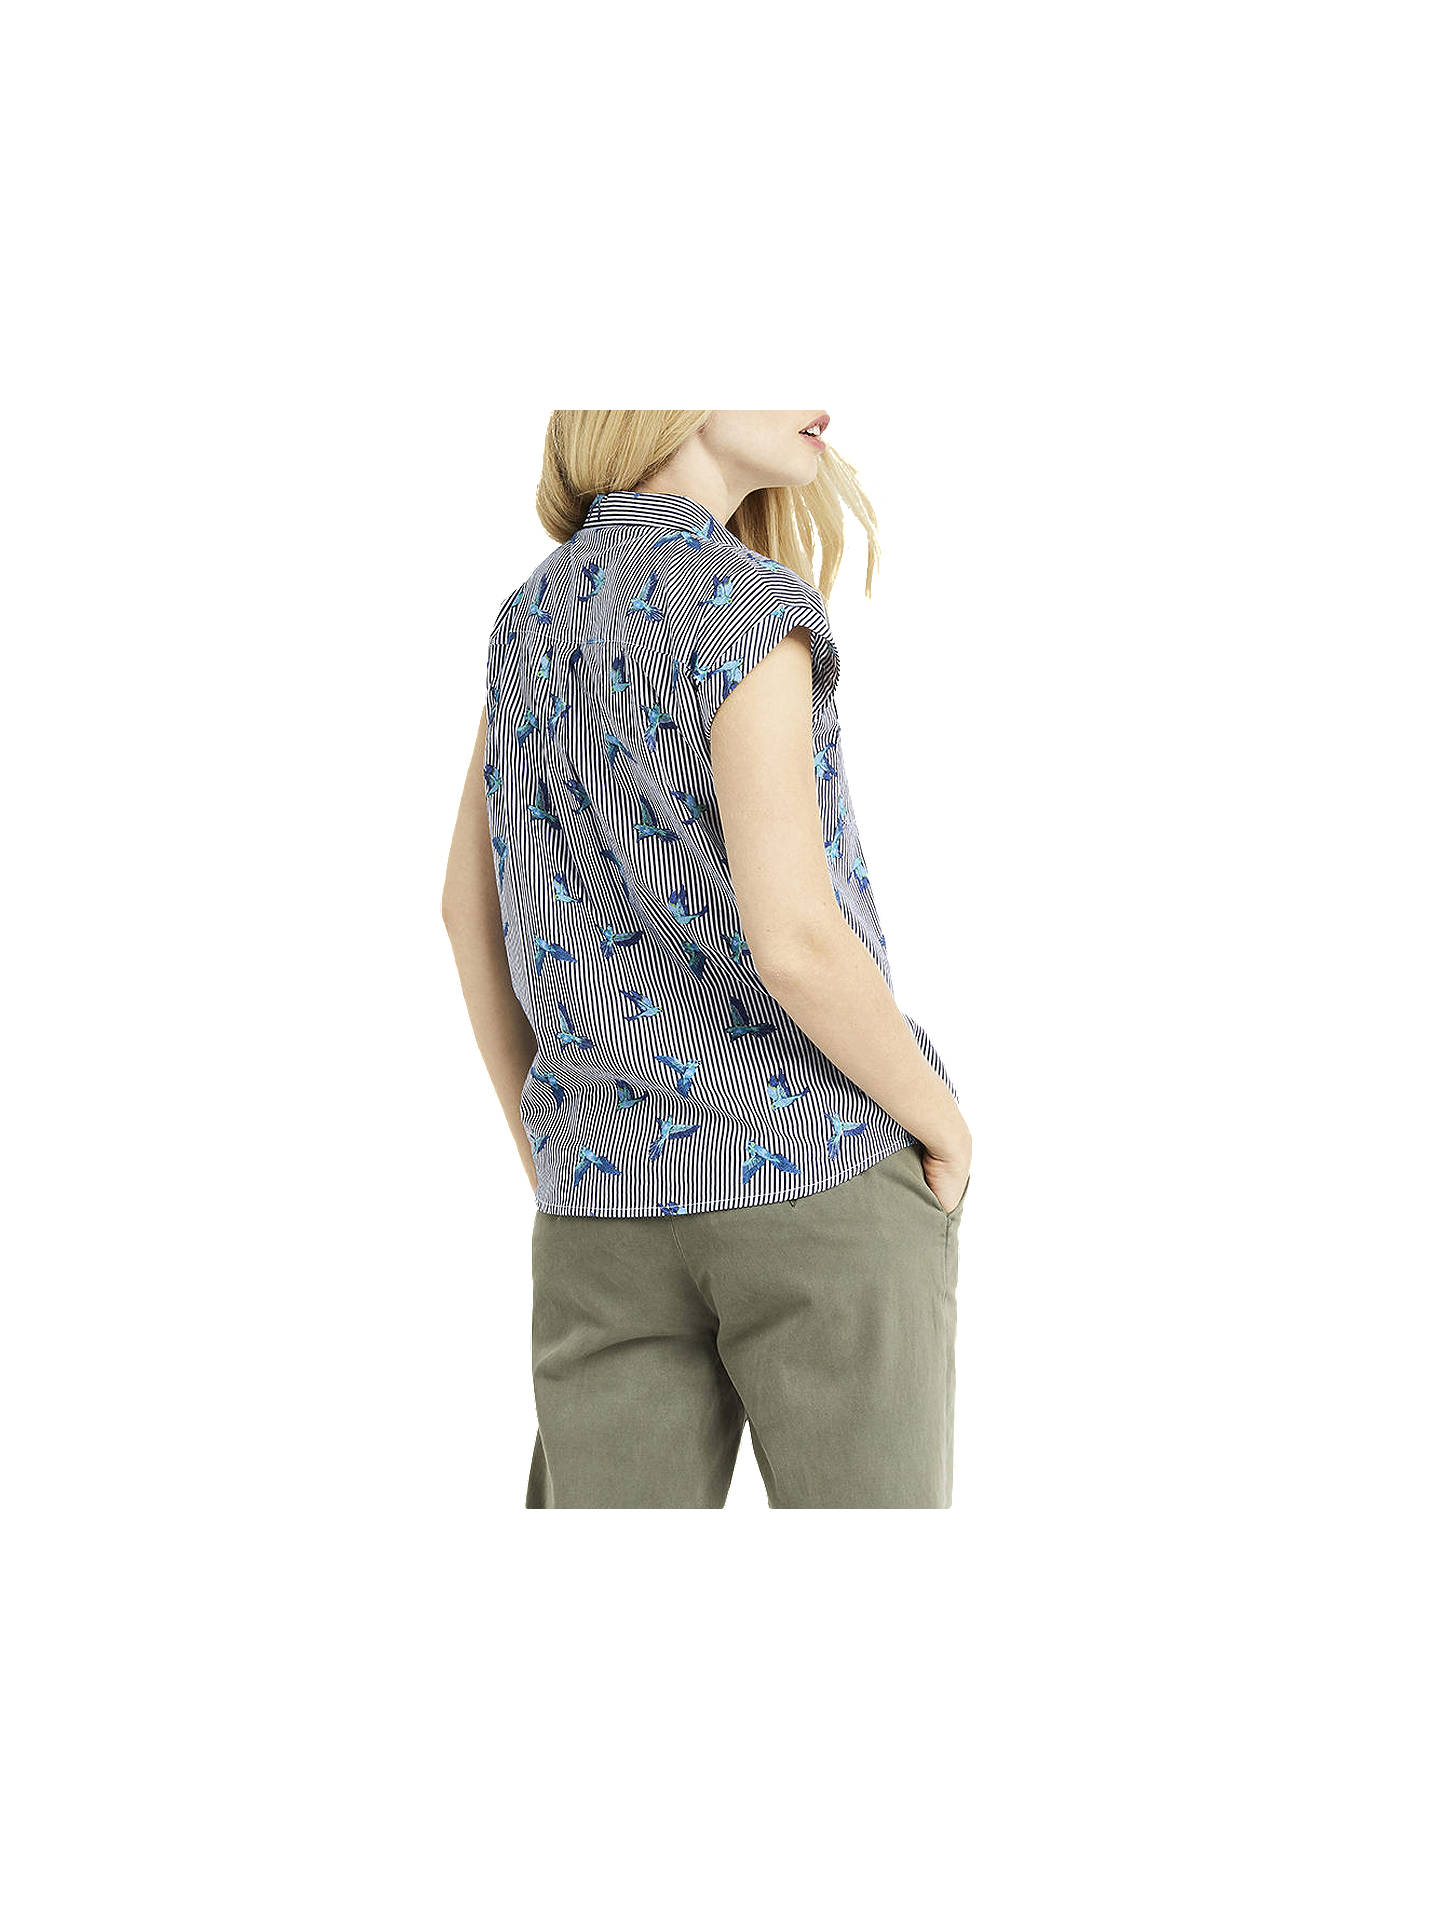 BuyOasis Ticking Stripe Bird Shirt, Multi, 6 Online at johnlewis.com